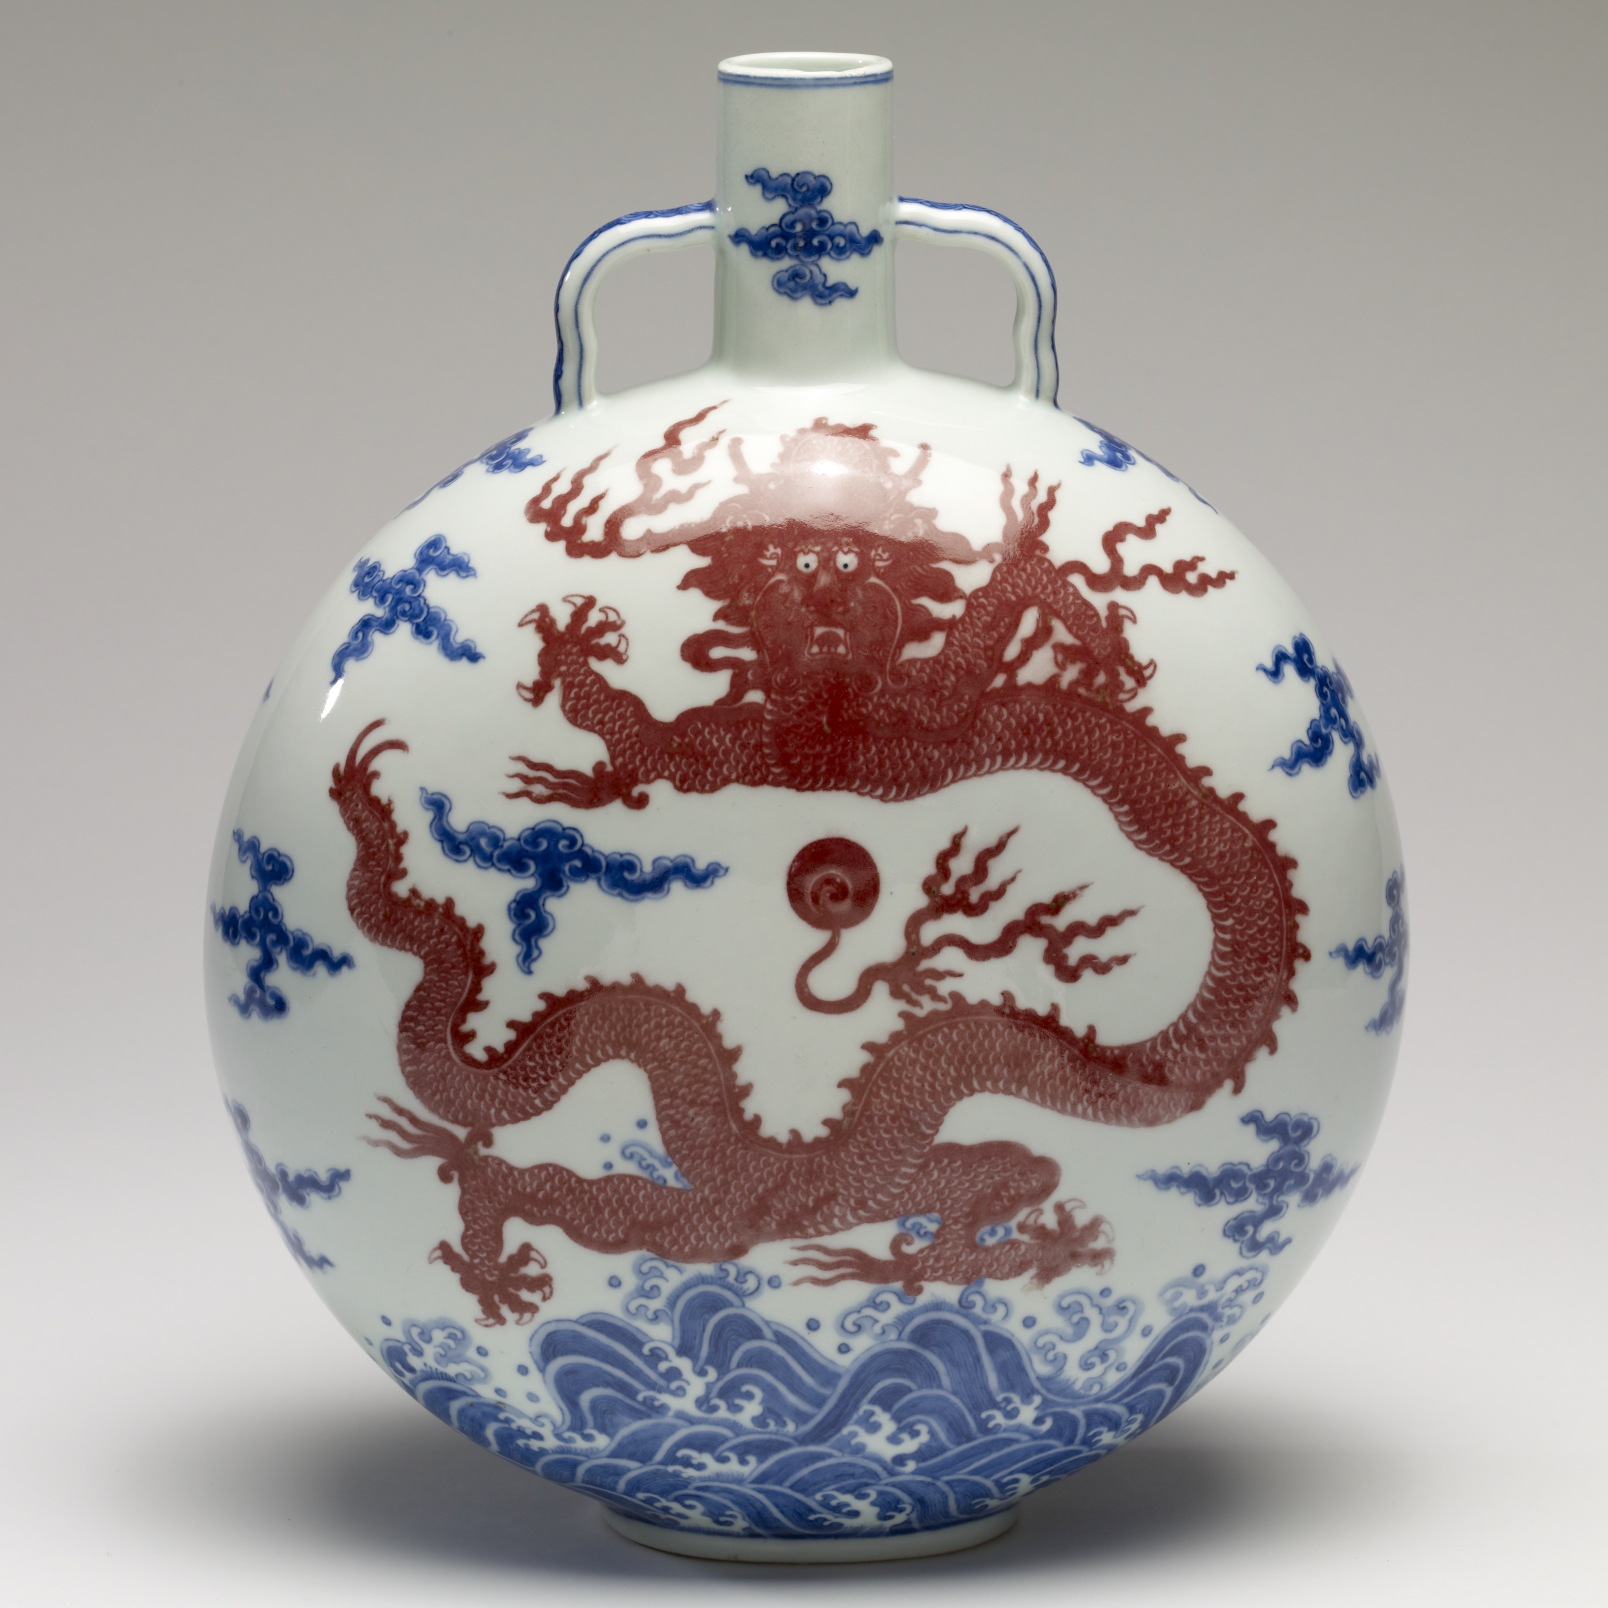 Image for Miami Presents: Objects that Changed the World - Porcelain with Michael Hatch webinar